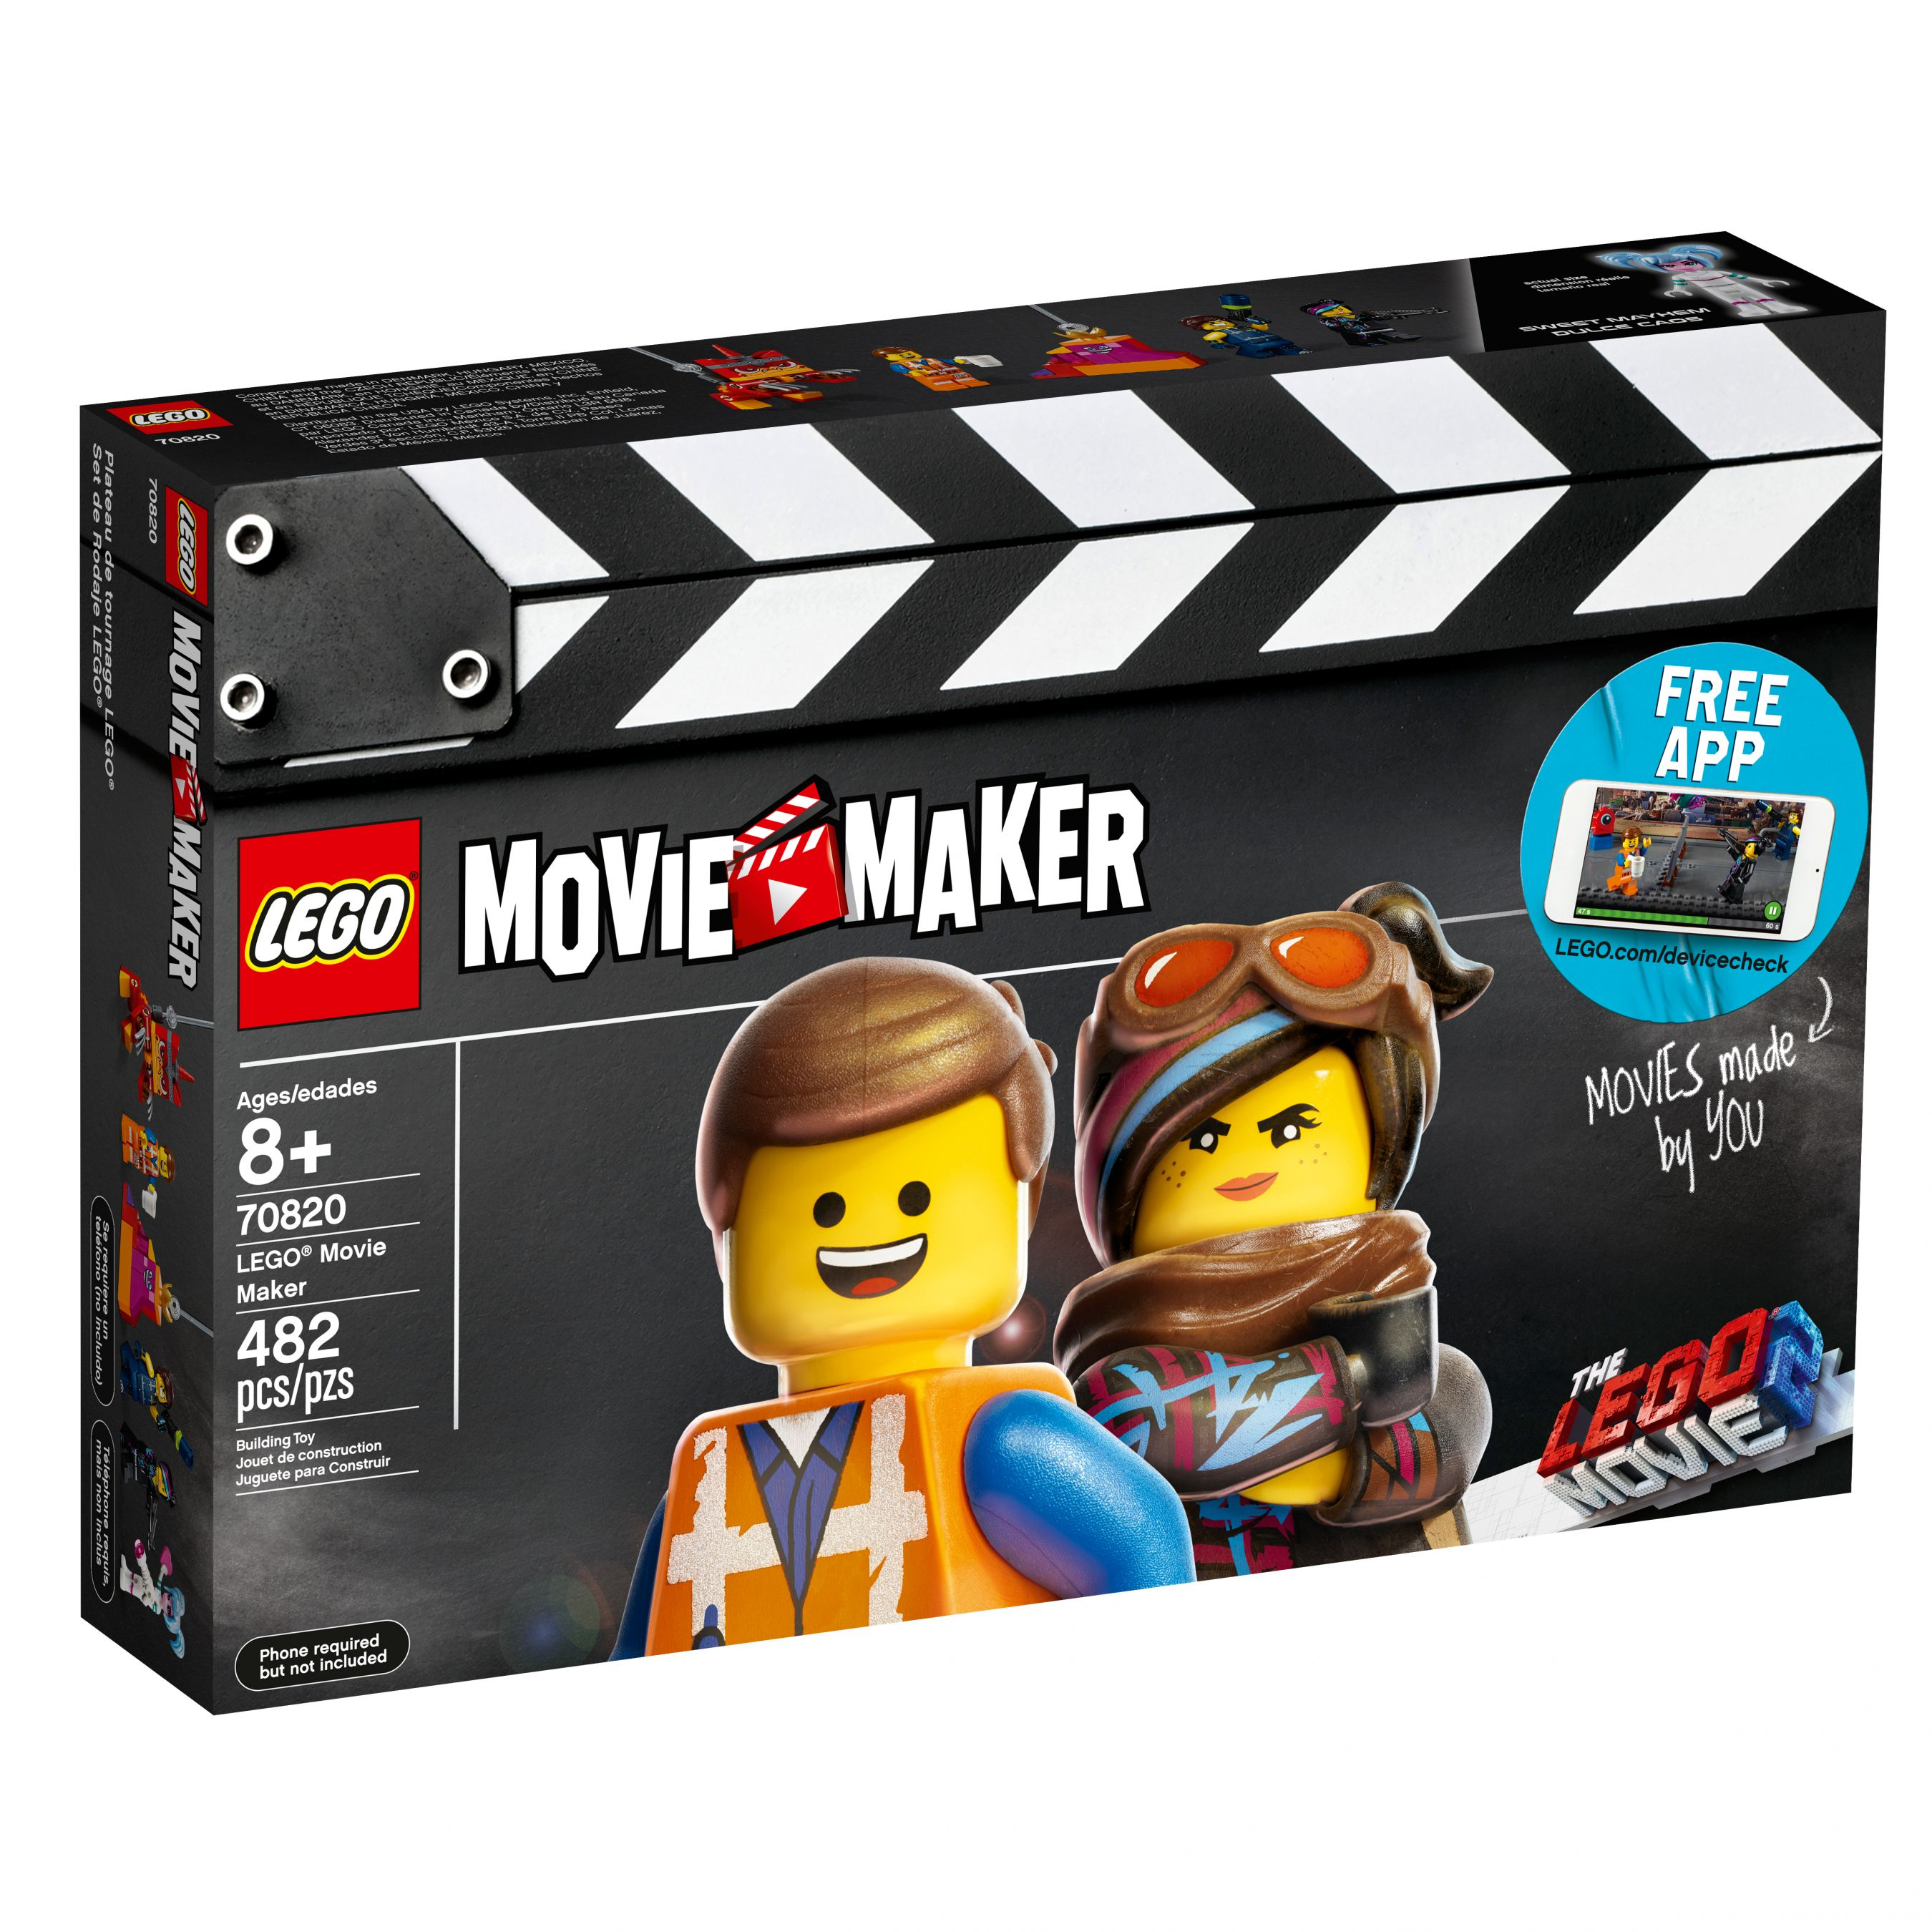 LEGO The LEGO Movie 2 70820 LEGO® Movie Maker LEGO_70820_alt1.jpg